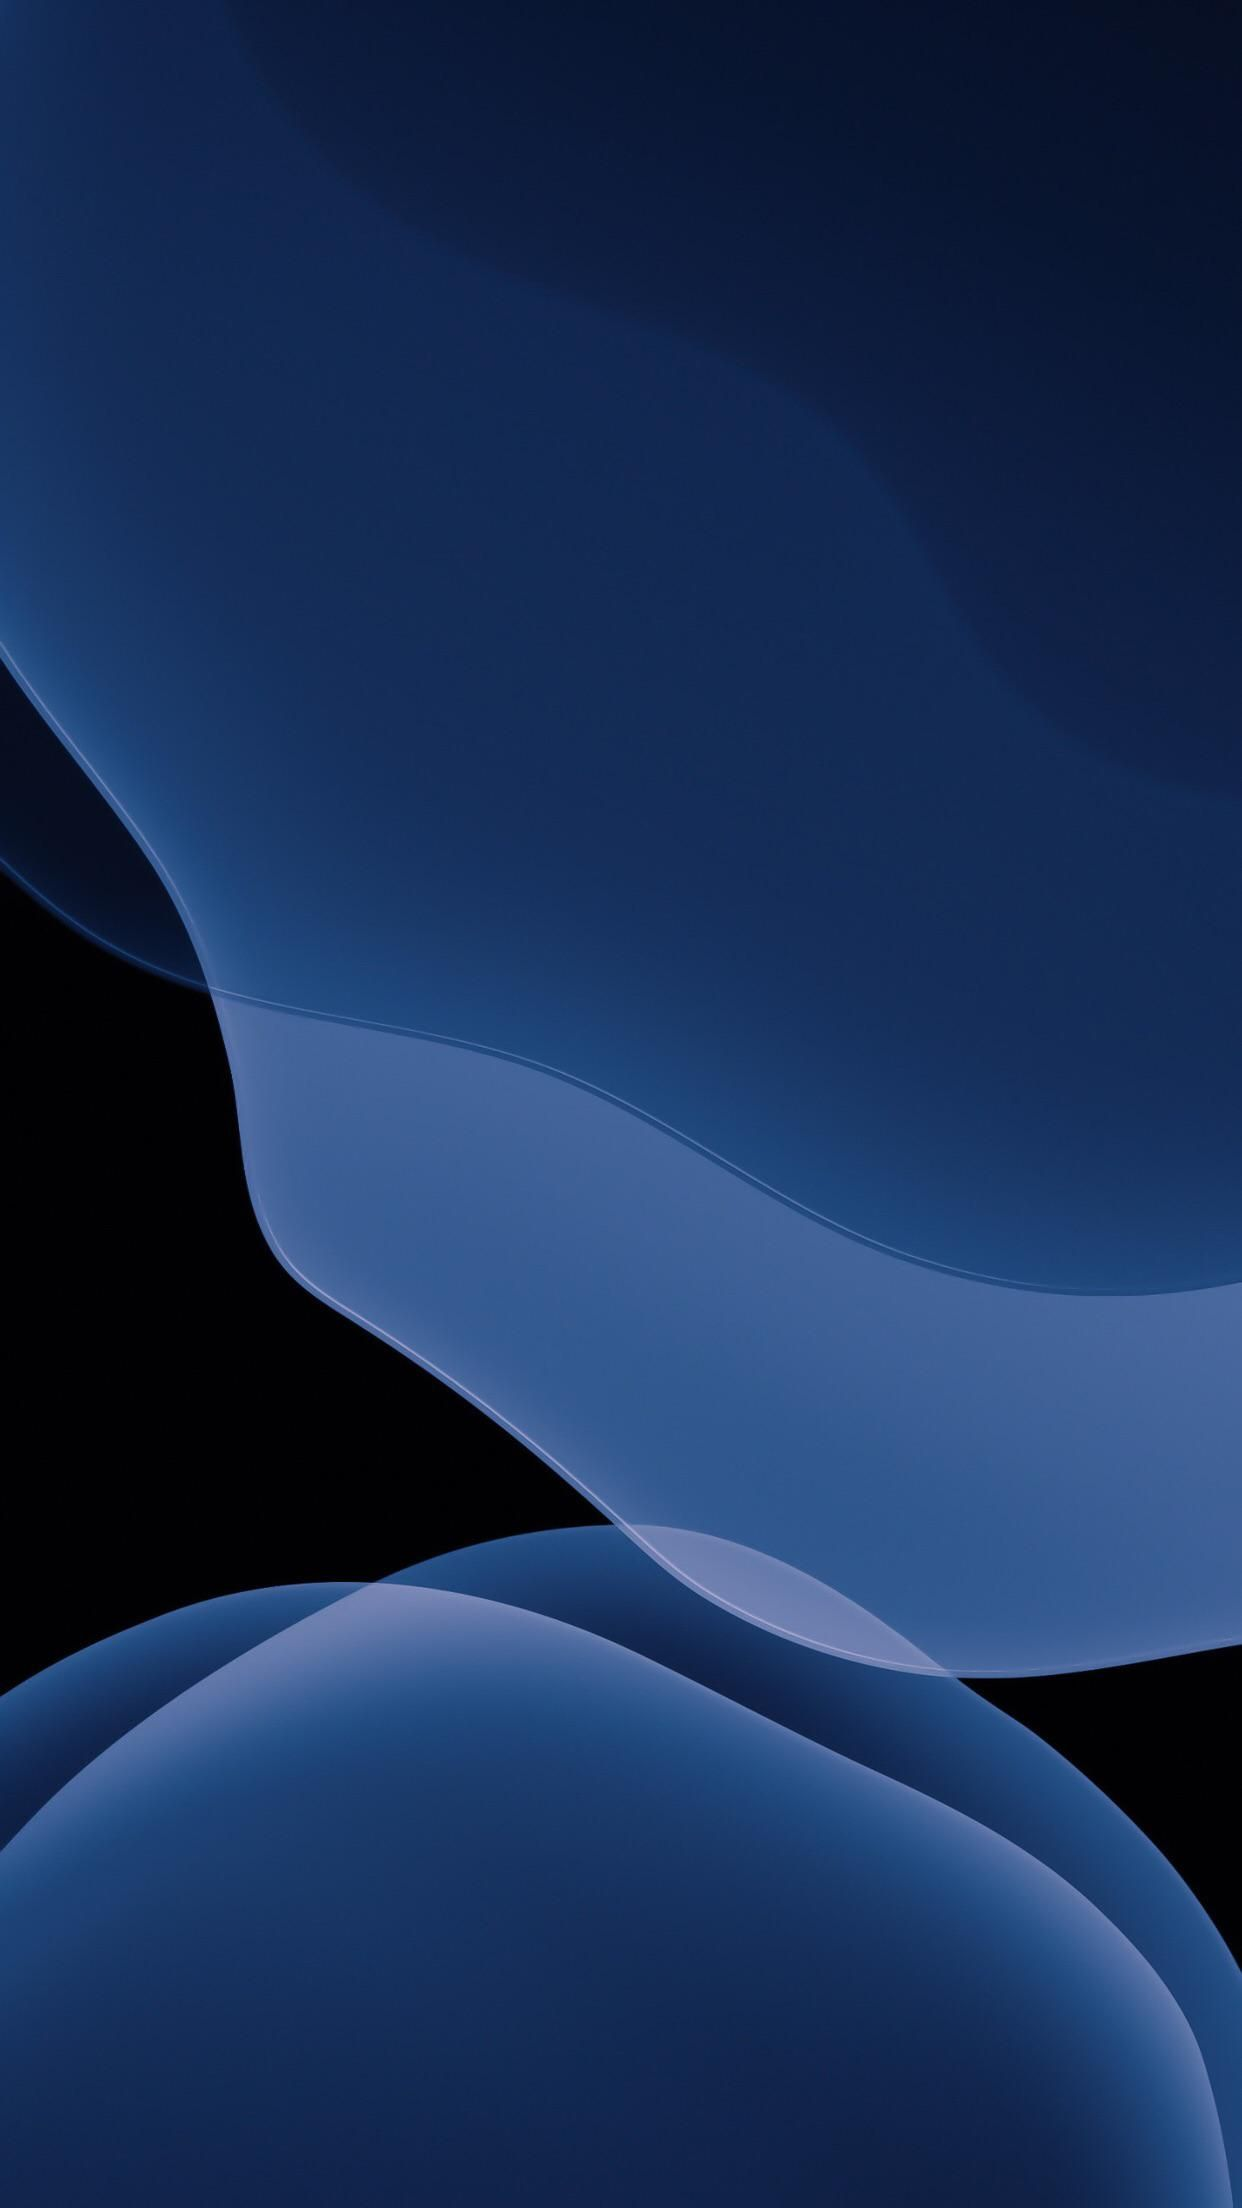 Ios 13 Stock Midnight Blue Dark For All Iphone Dark Phone Wallpapers Iphone Wallpaper Ios Apple Wallpaper Iphone